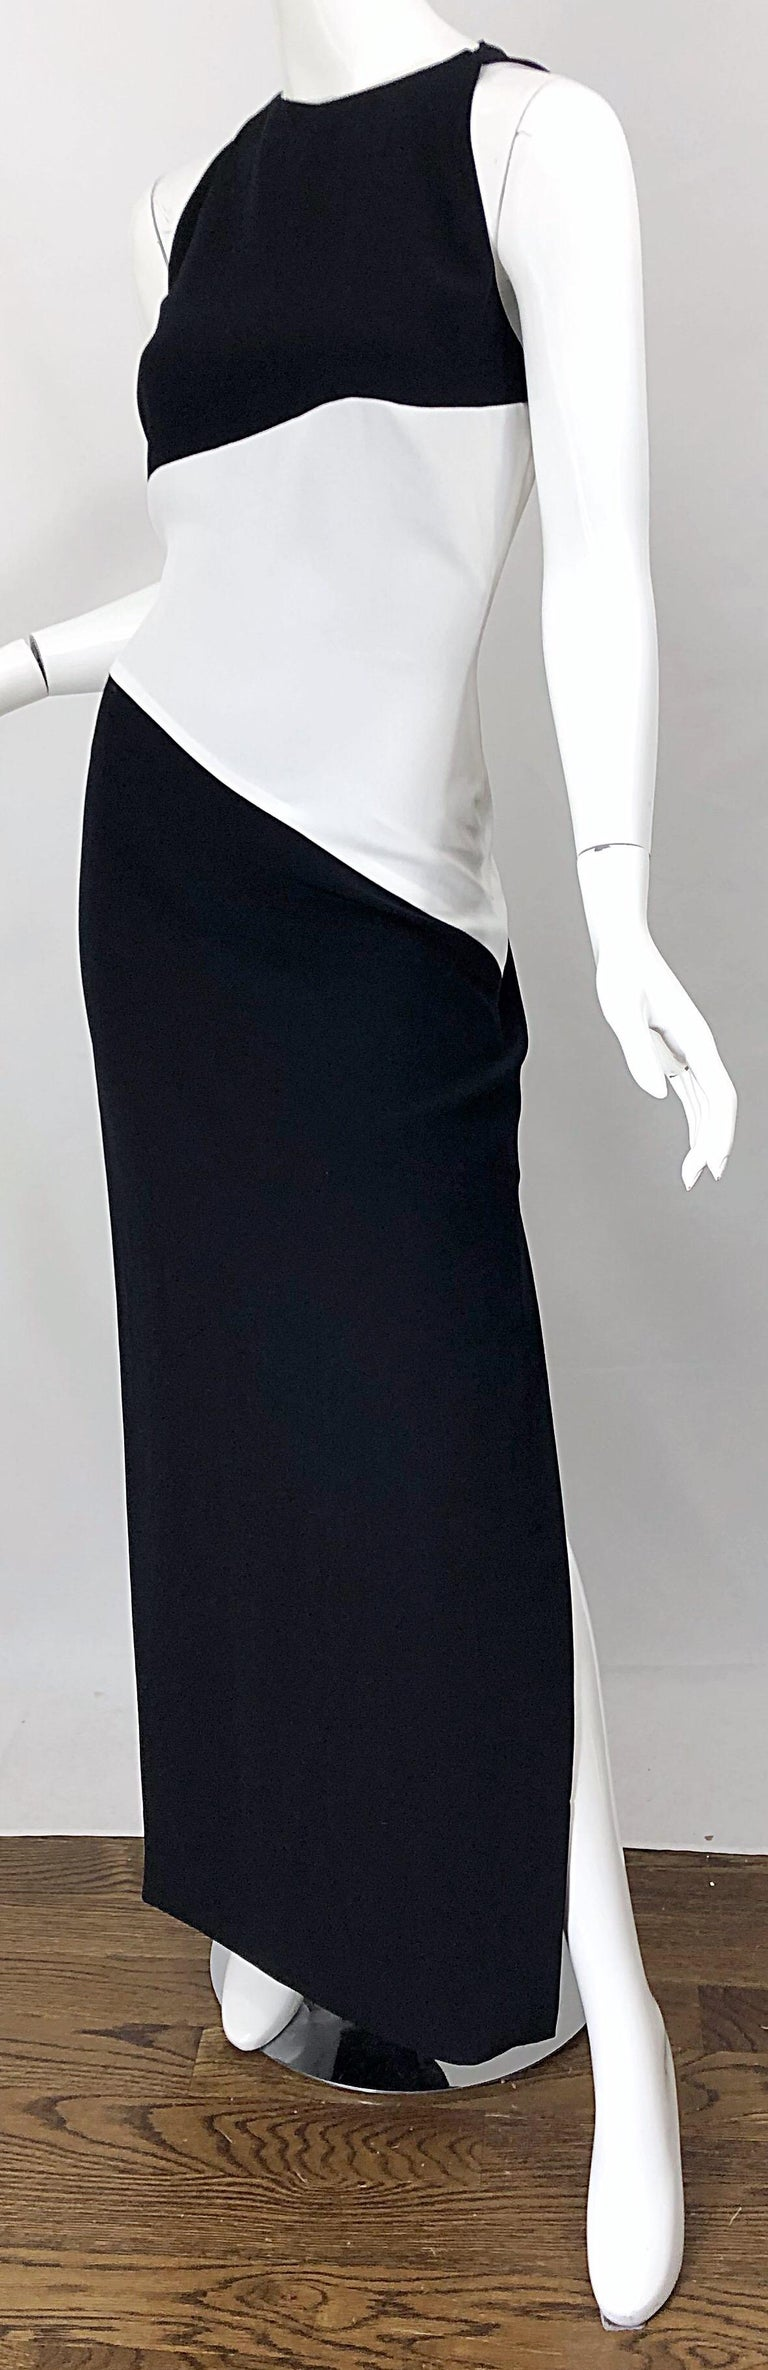 NWT Vintage Bob Mackie Size 8 Black and White Color Block Sleeveless Gown Dress For Sale 8